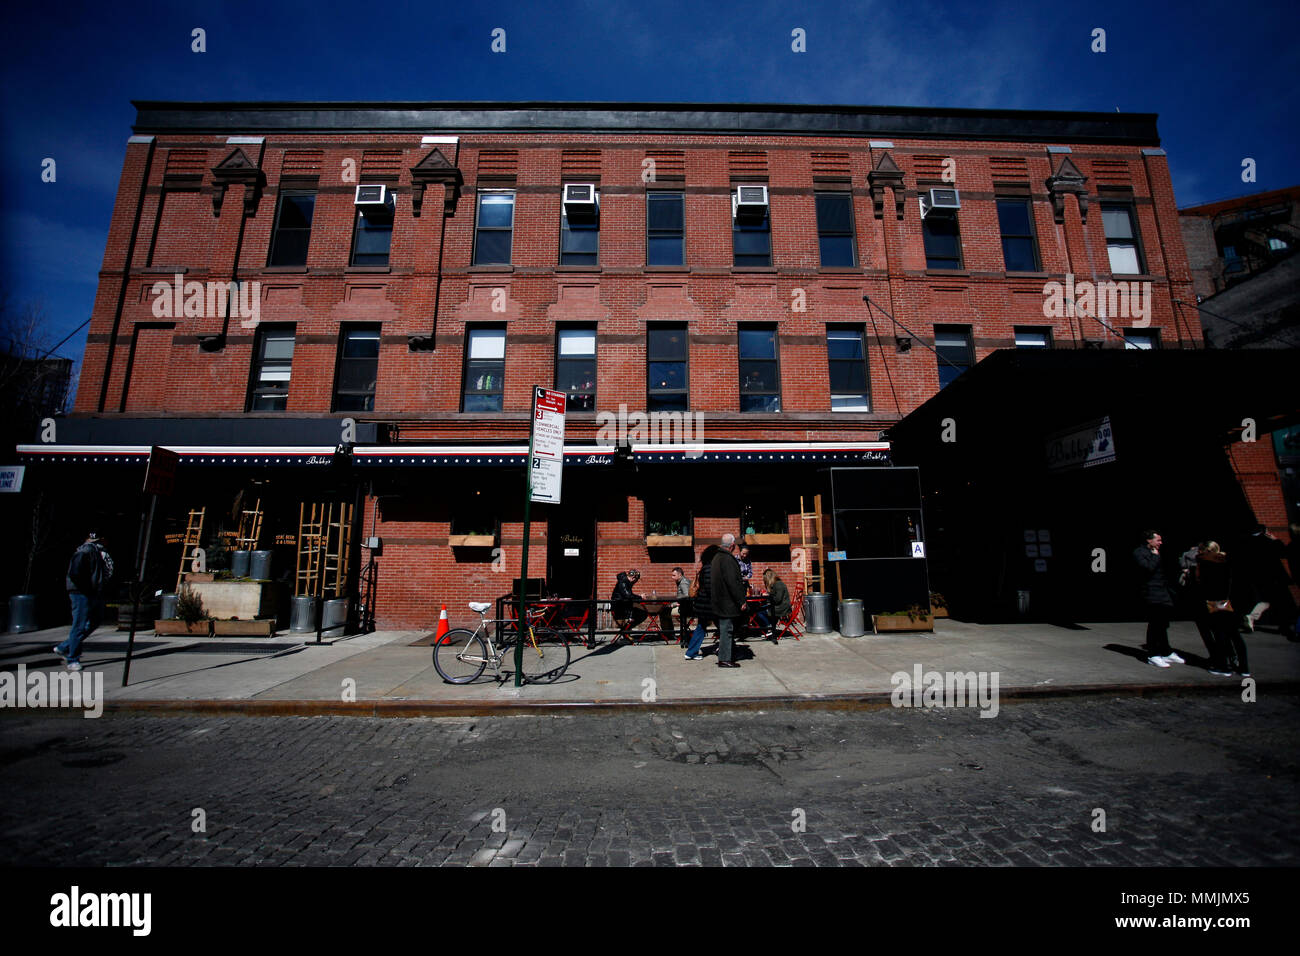 Meatpacking District of Manhattan, New York City - Stock Image